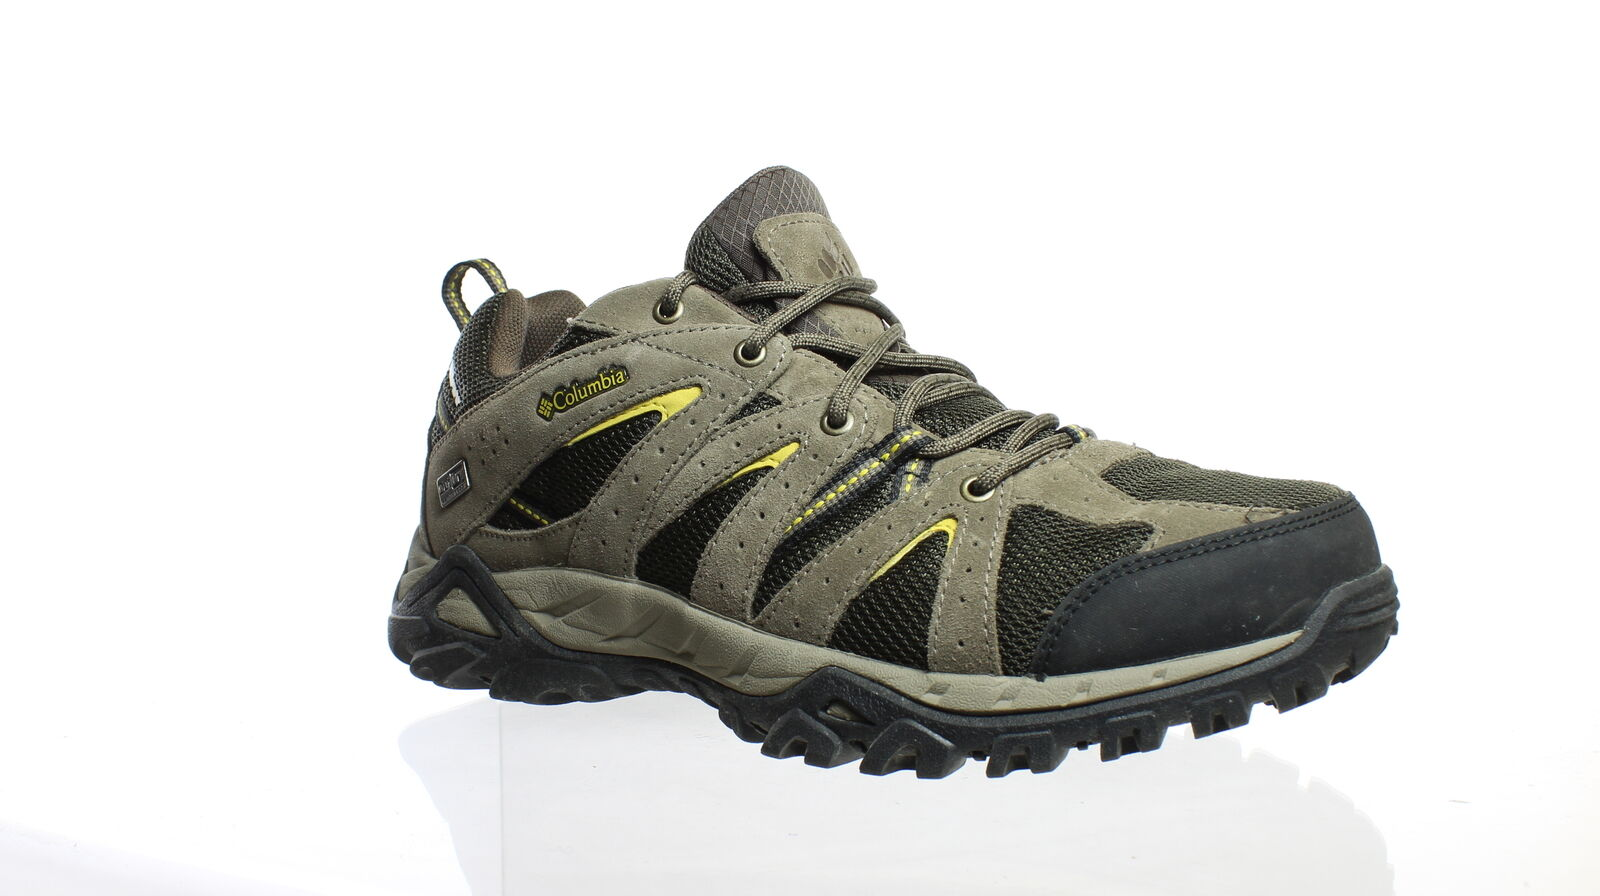 Columbia Mens Taupe Hiking shoes Size 8.5 (EE) (391776)